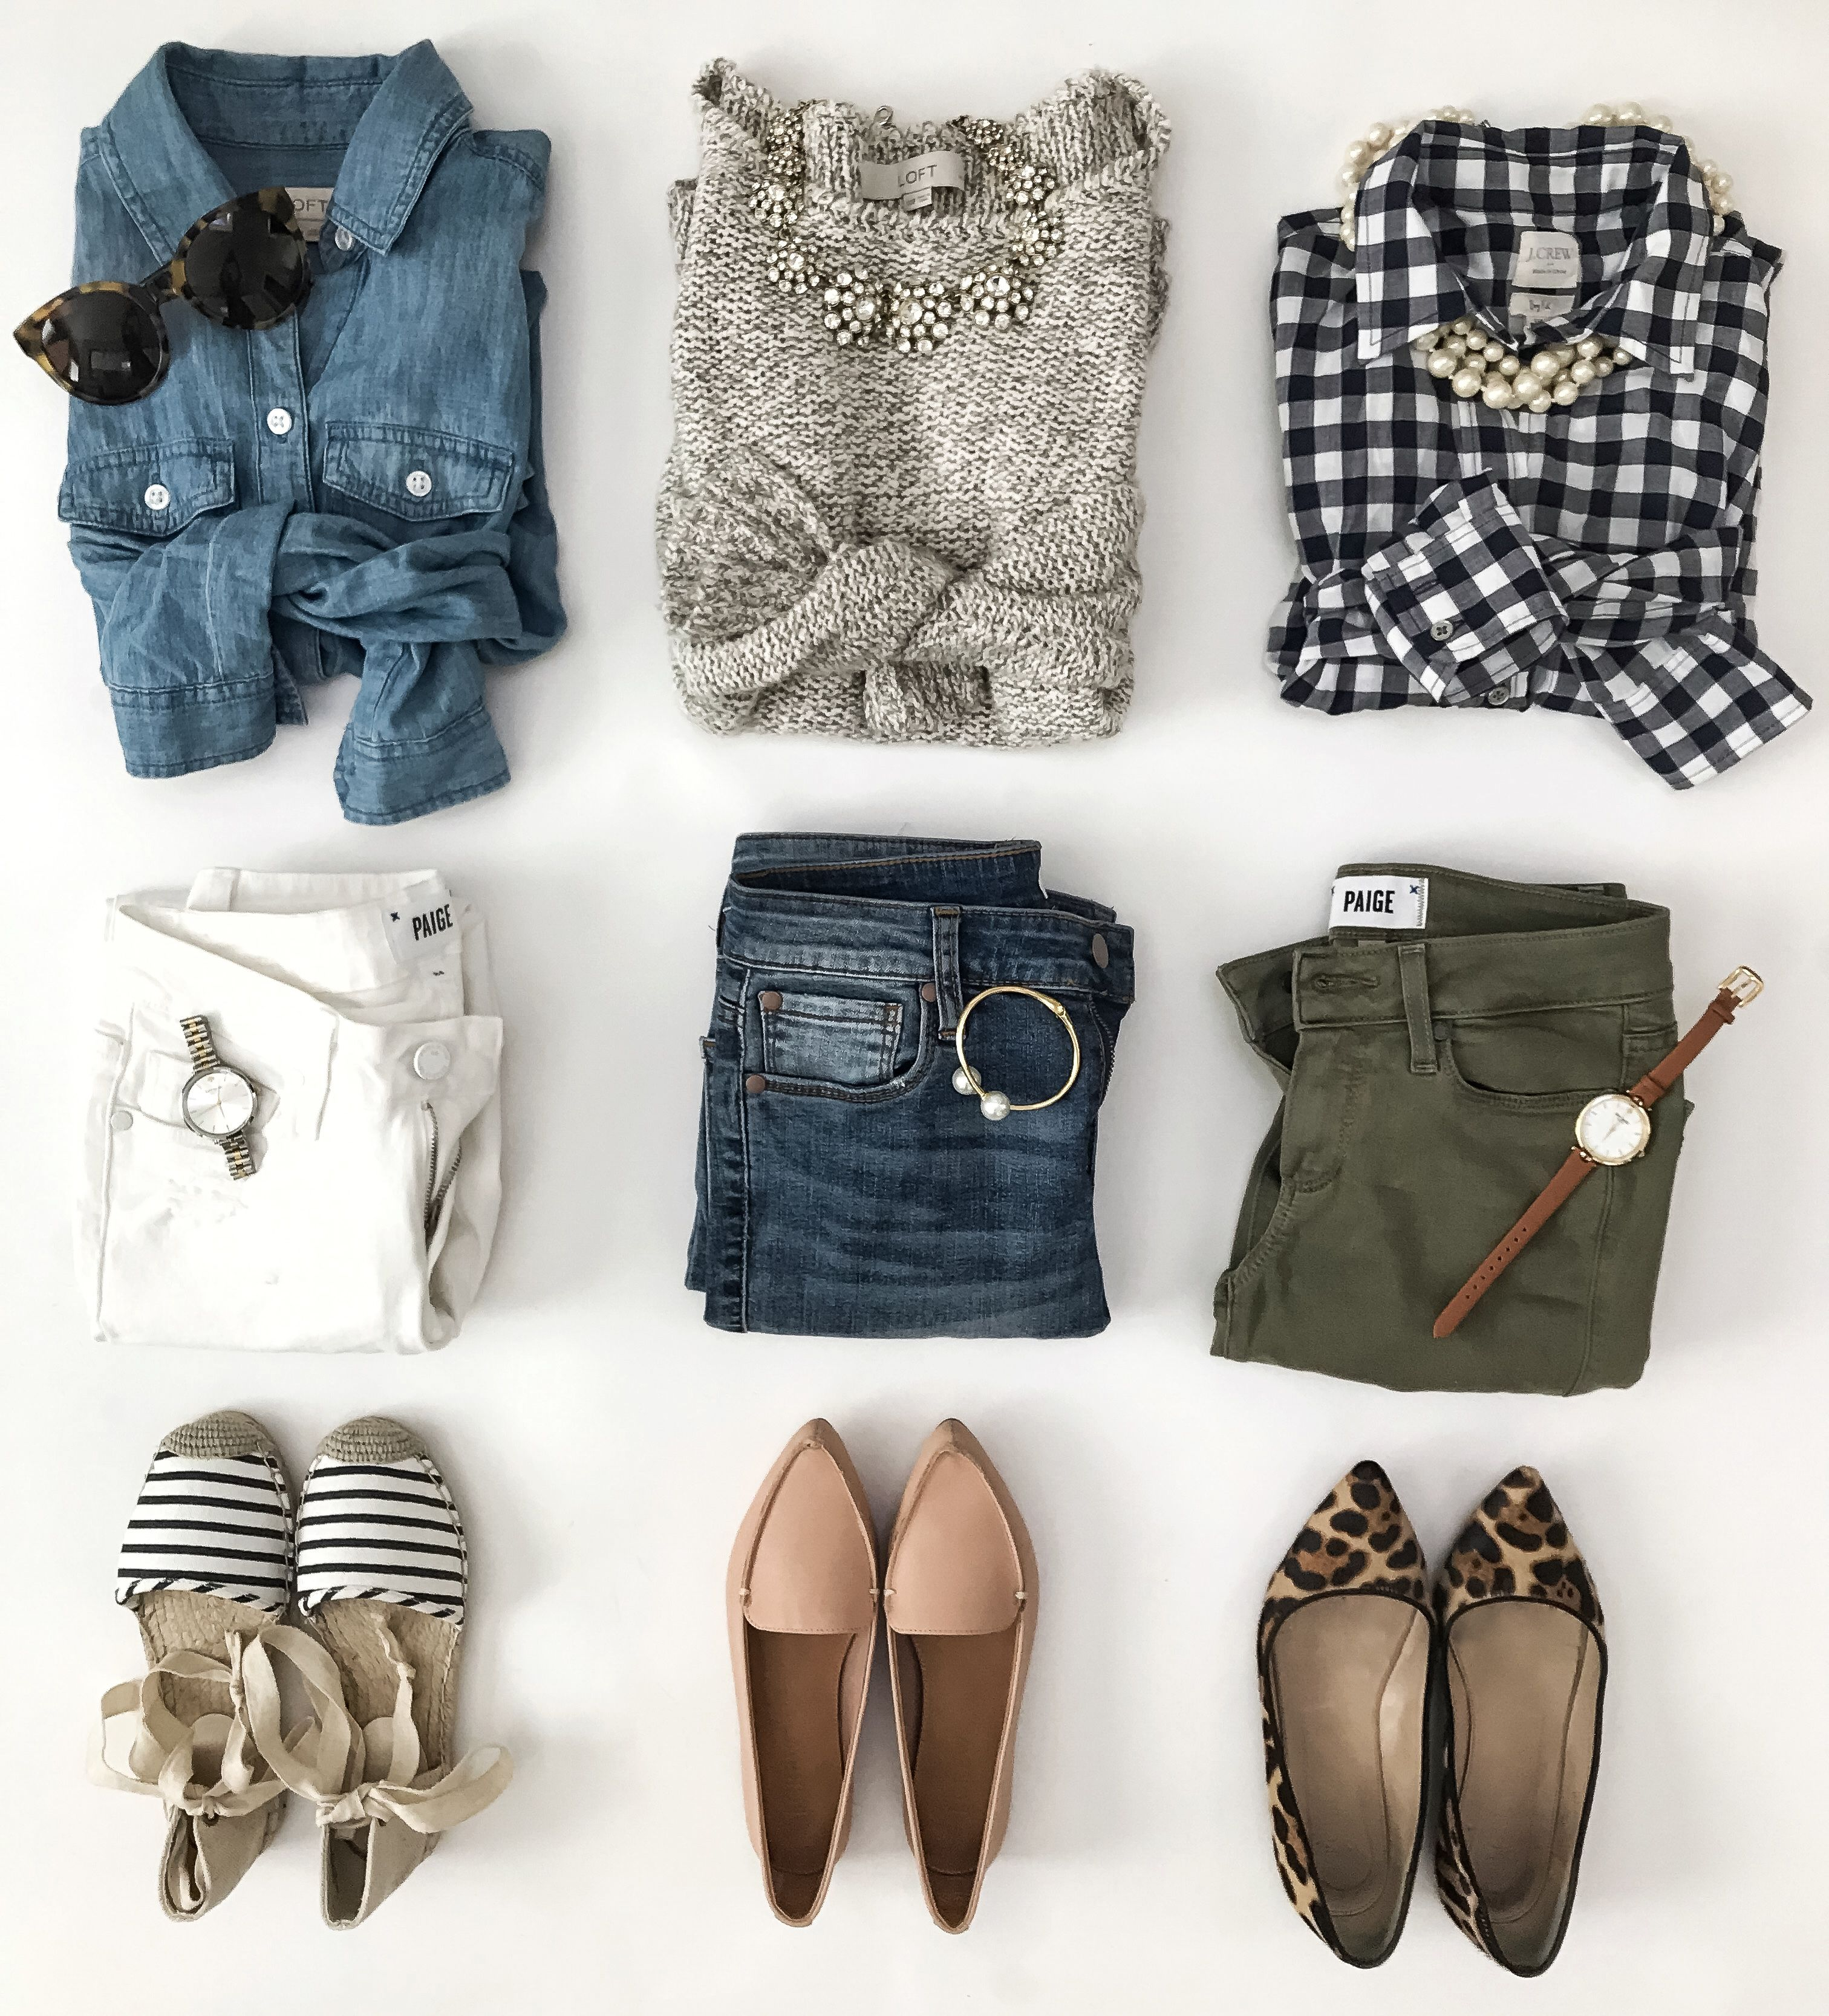 8516f1230831 Spring outfit ideas: Chambray shirt with white pants and striped  espadrilles. Gingham shirt with olive pants and leopard print flats.